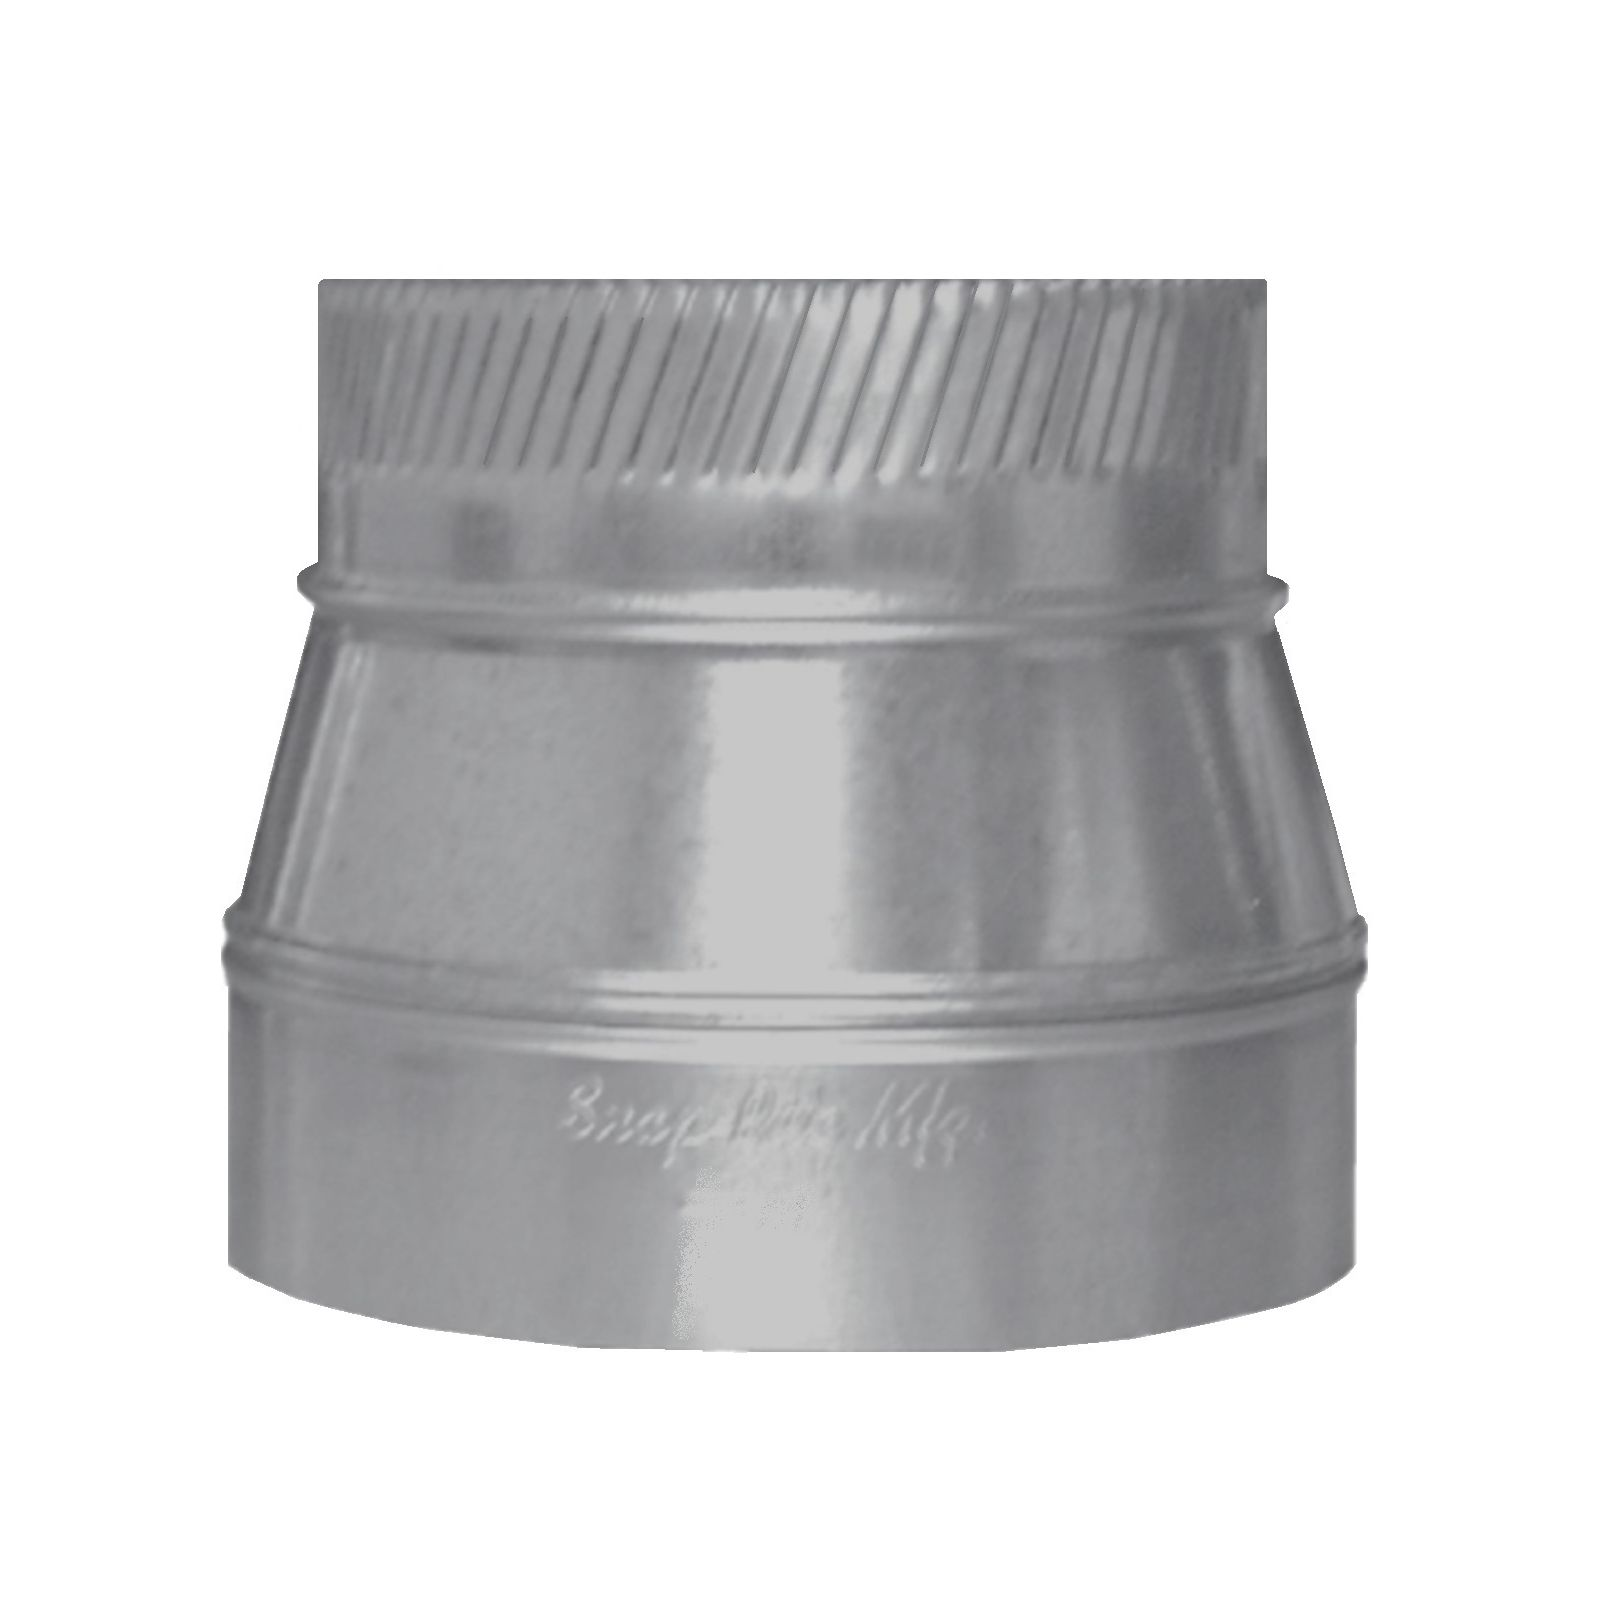 "Snap-Rite 10X08-311 - Crimp Tapered Reducer, 10"" x 08"""